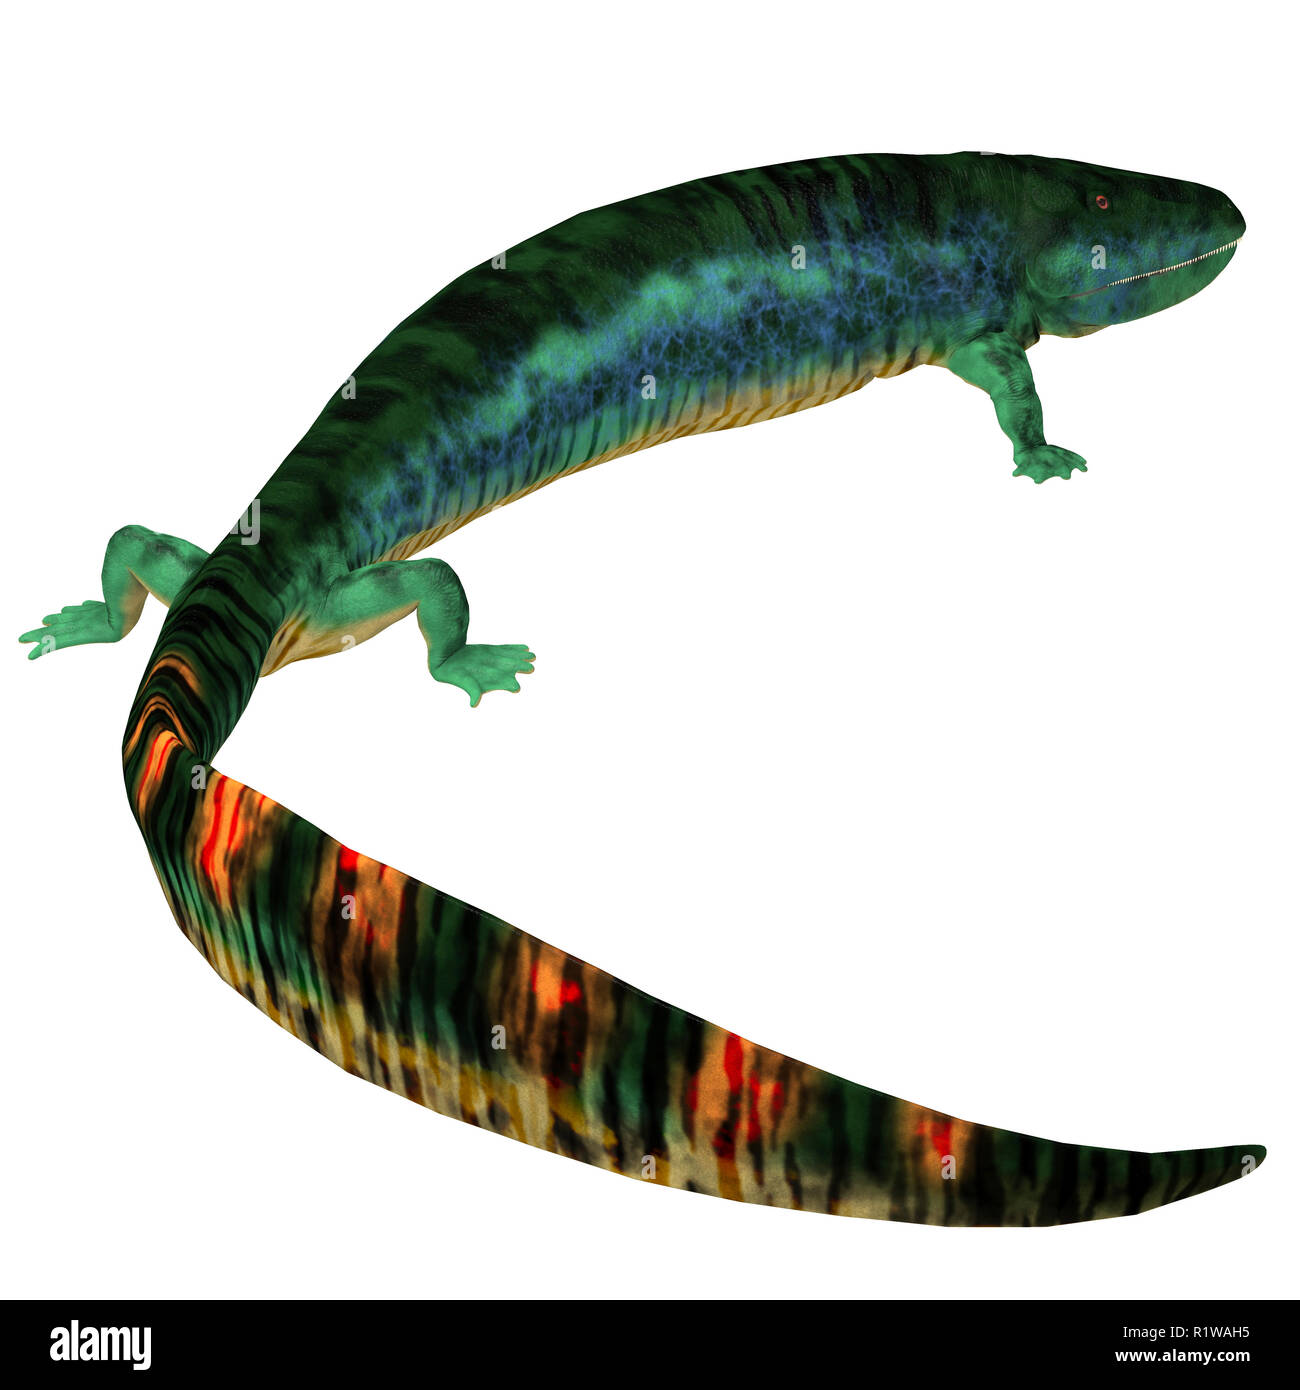 Eogyrinus was an amphibian tetrapod that lived in England during the Carboniferous Period. - Stock Image